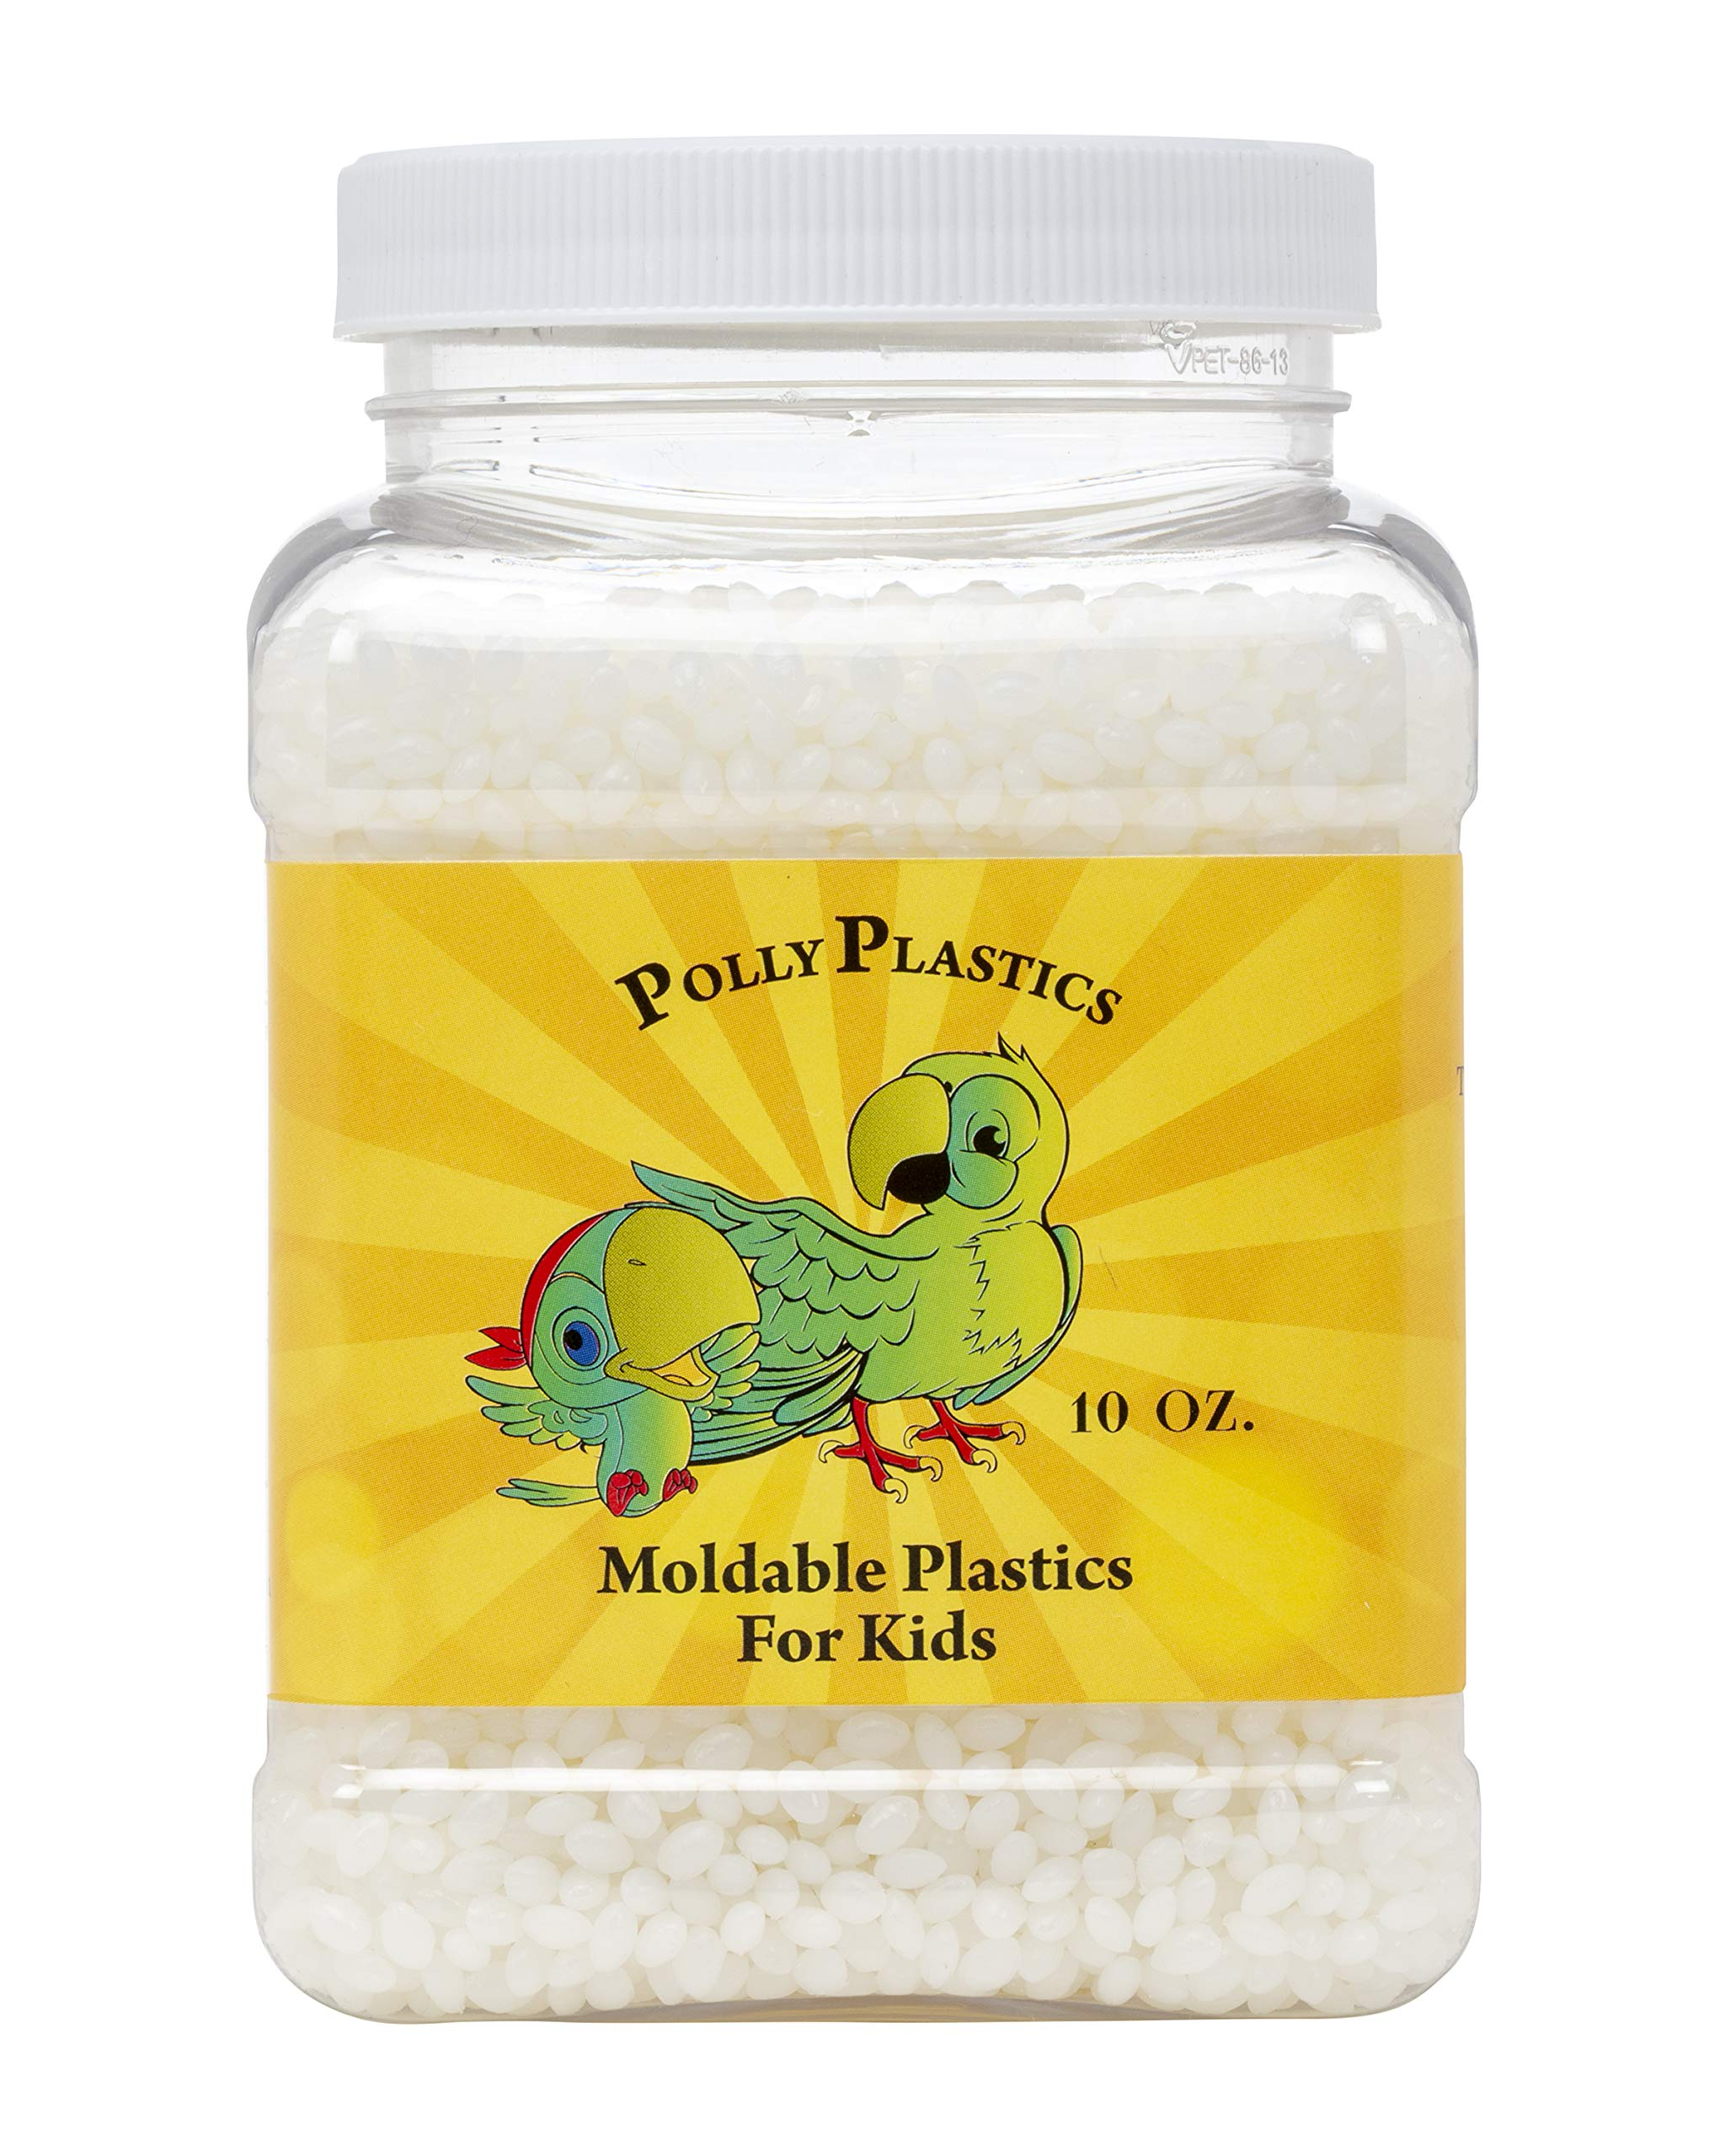 Kids Moldable Plastic Pellets by Polly Plastics | Lower Melt Temperature Safe for Children | Non-Toxic Thermoplastic Molding Beads (10 oz)